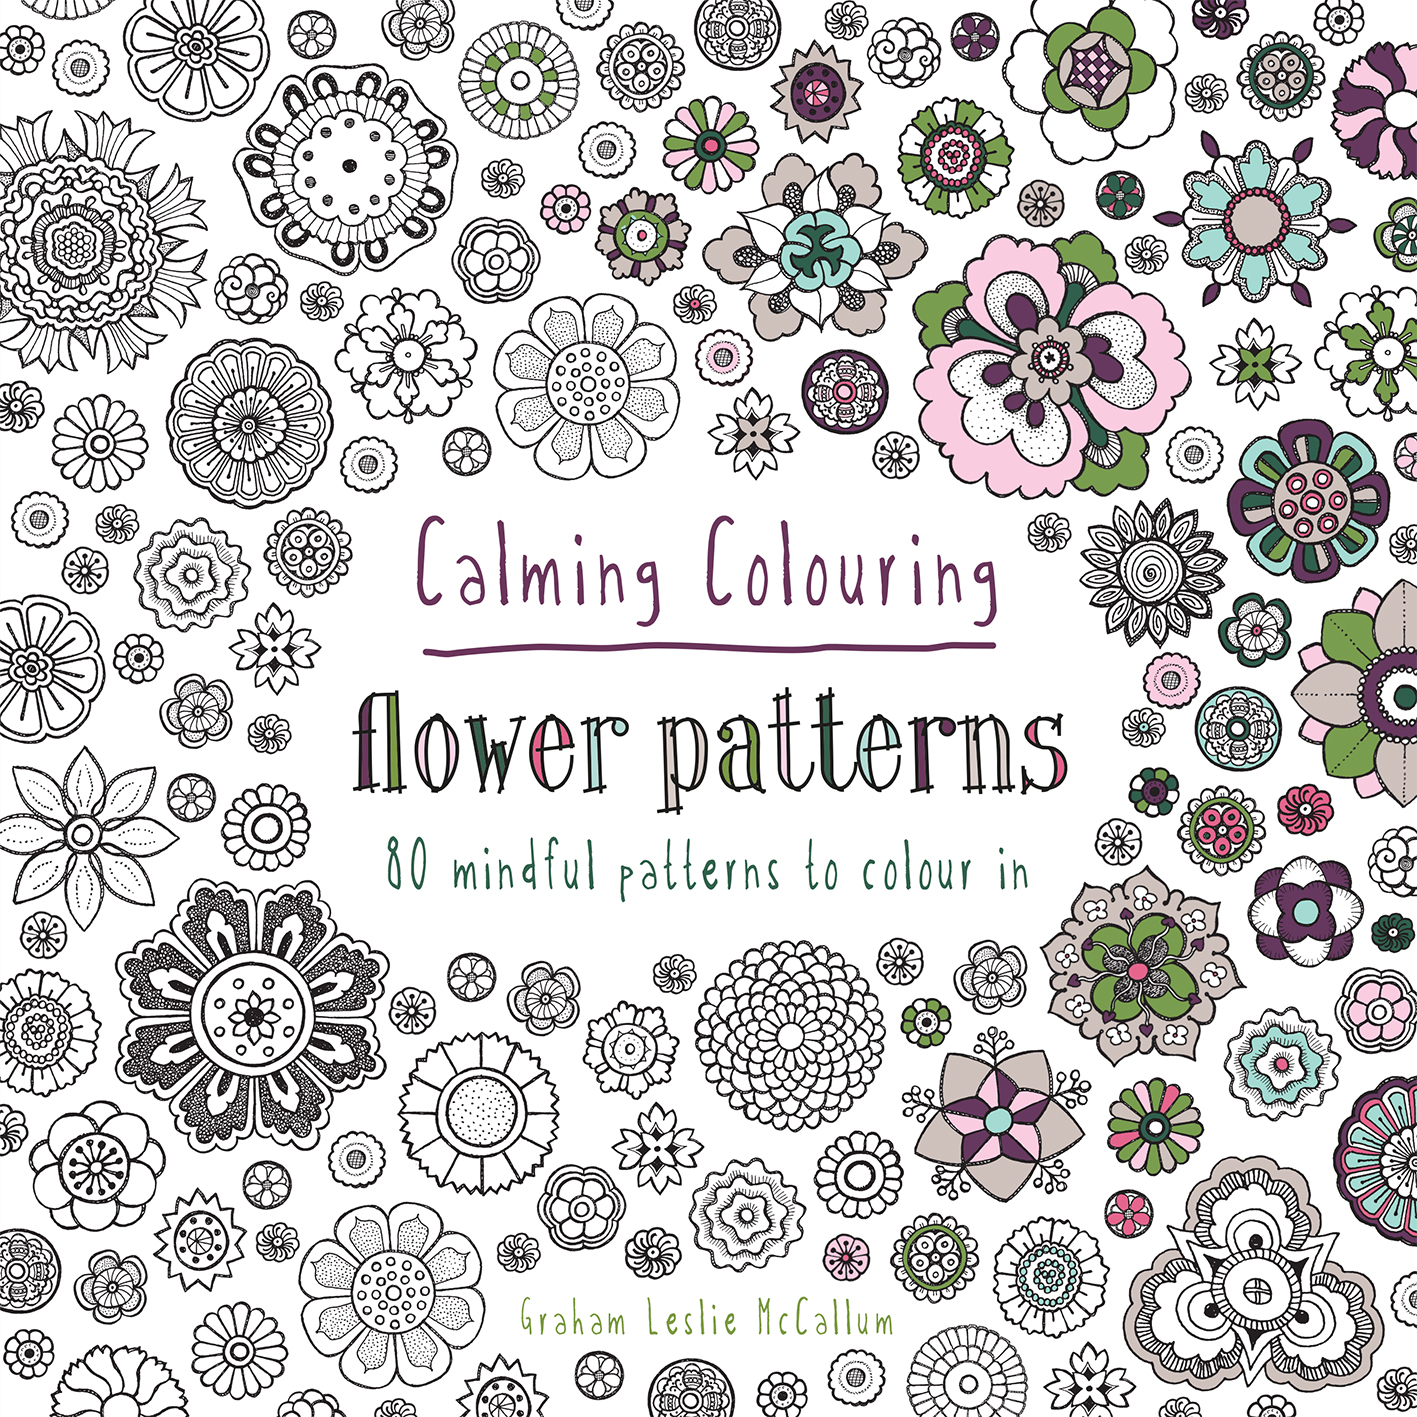 Calming Colouring Flower Patterns